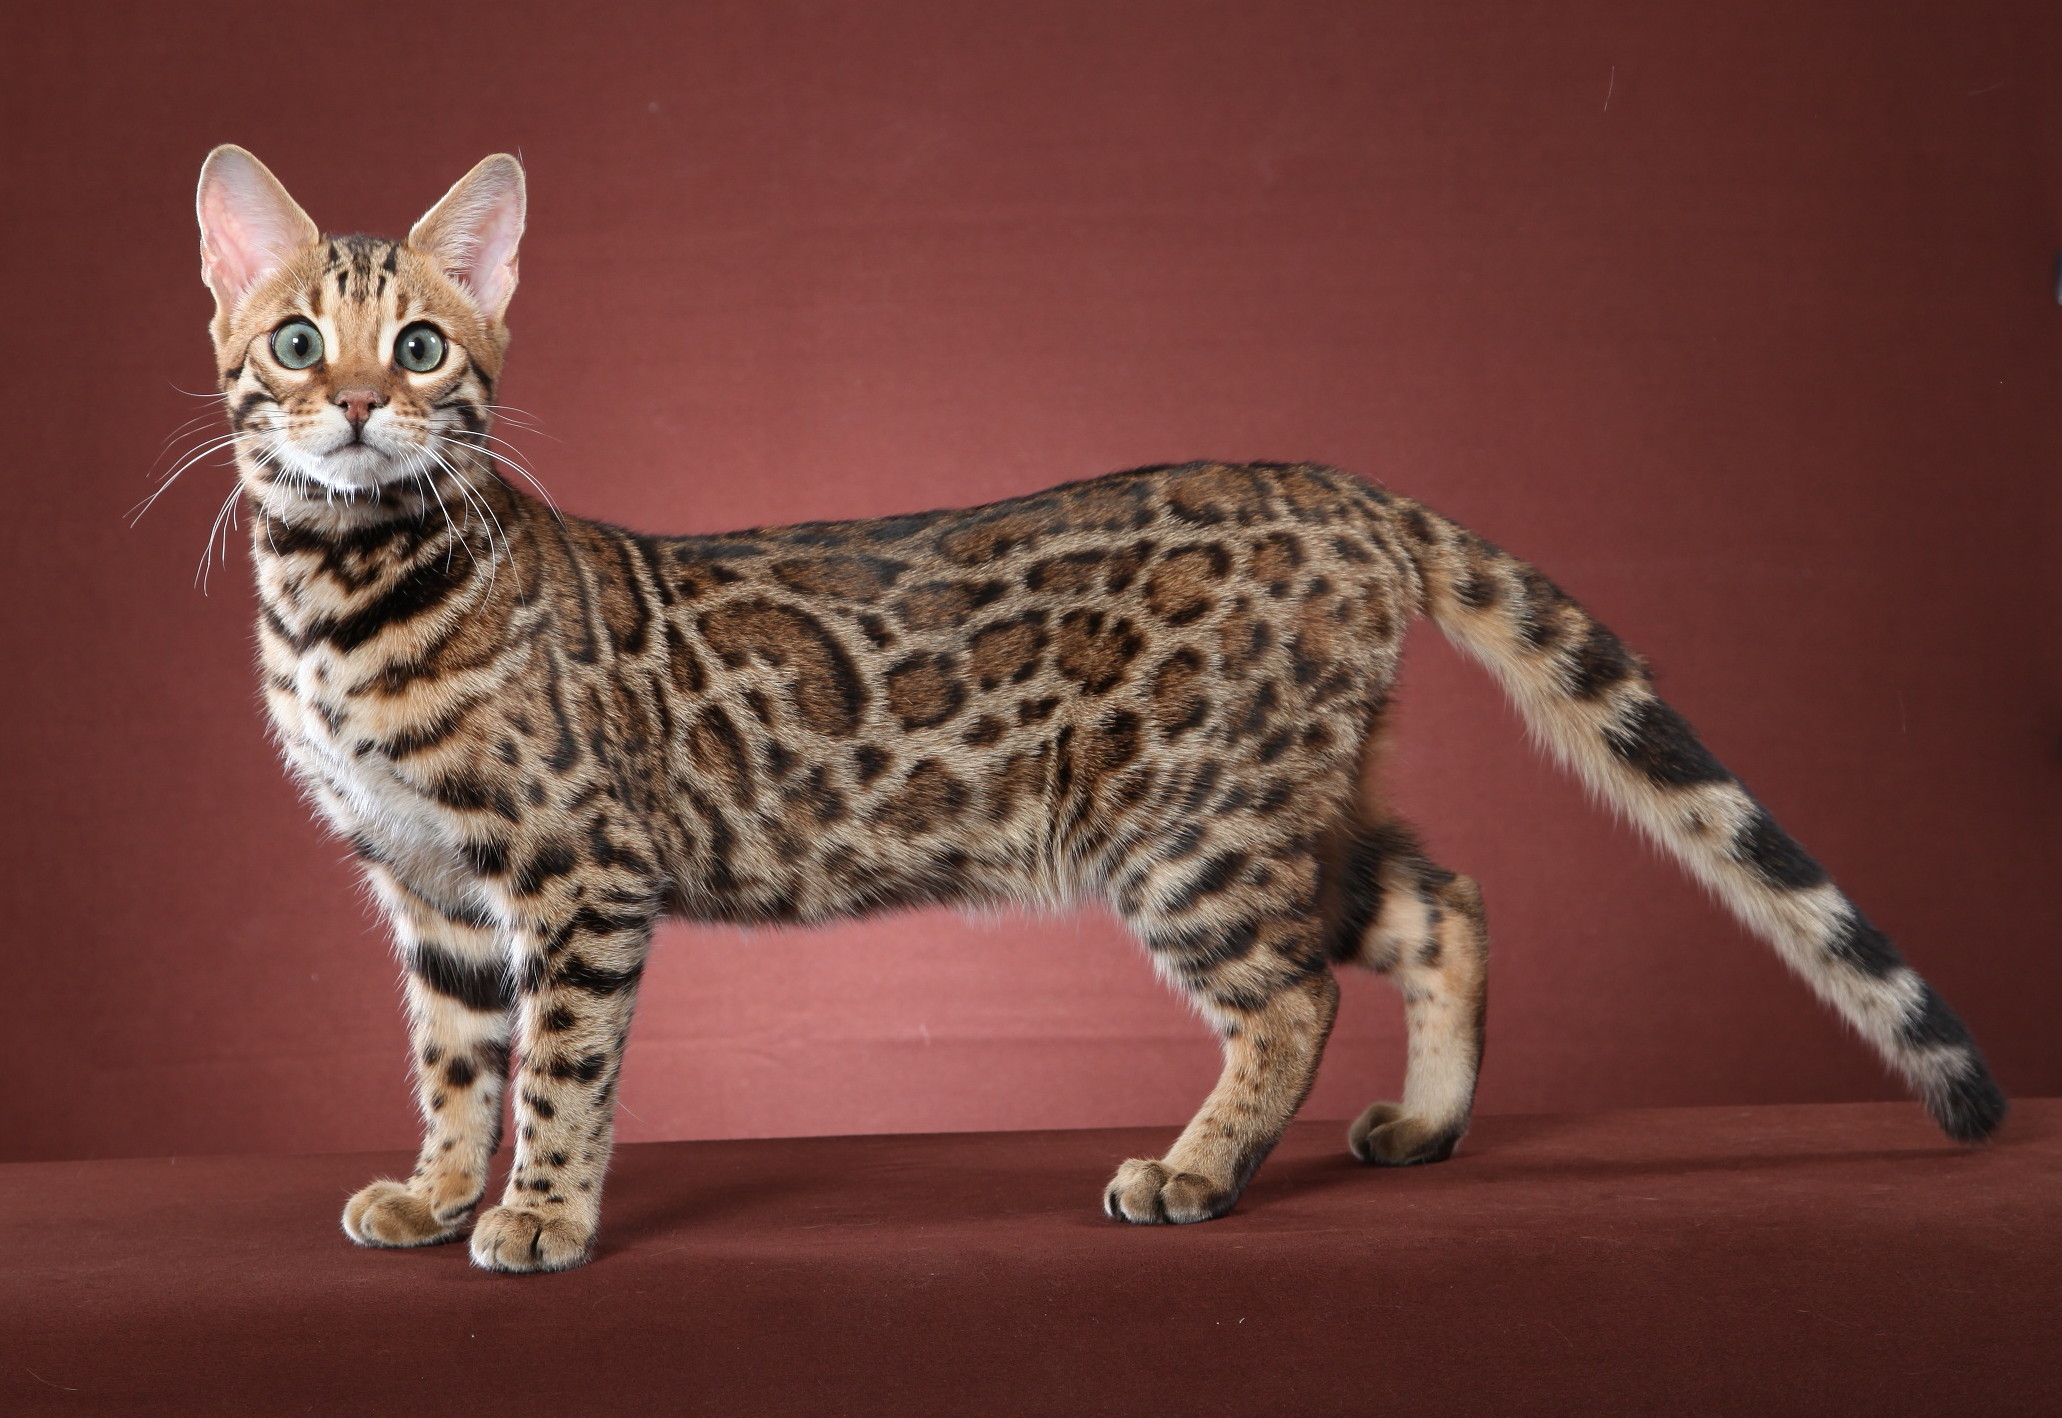 A Bengal Cat For Sale We have never s...